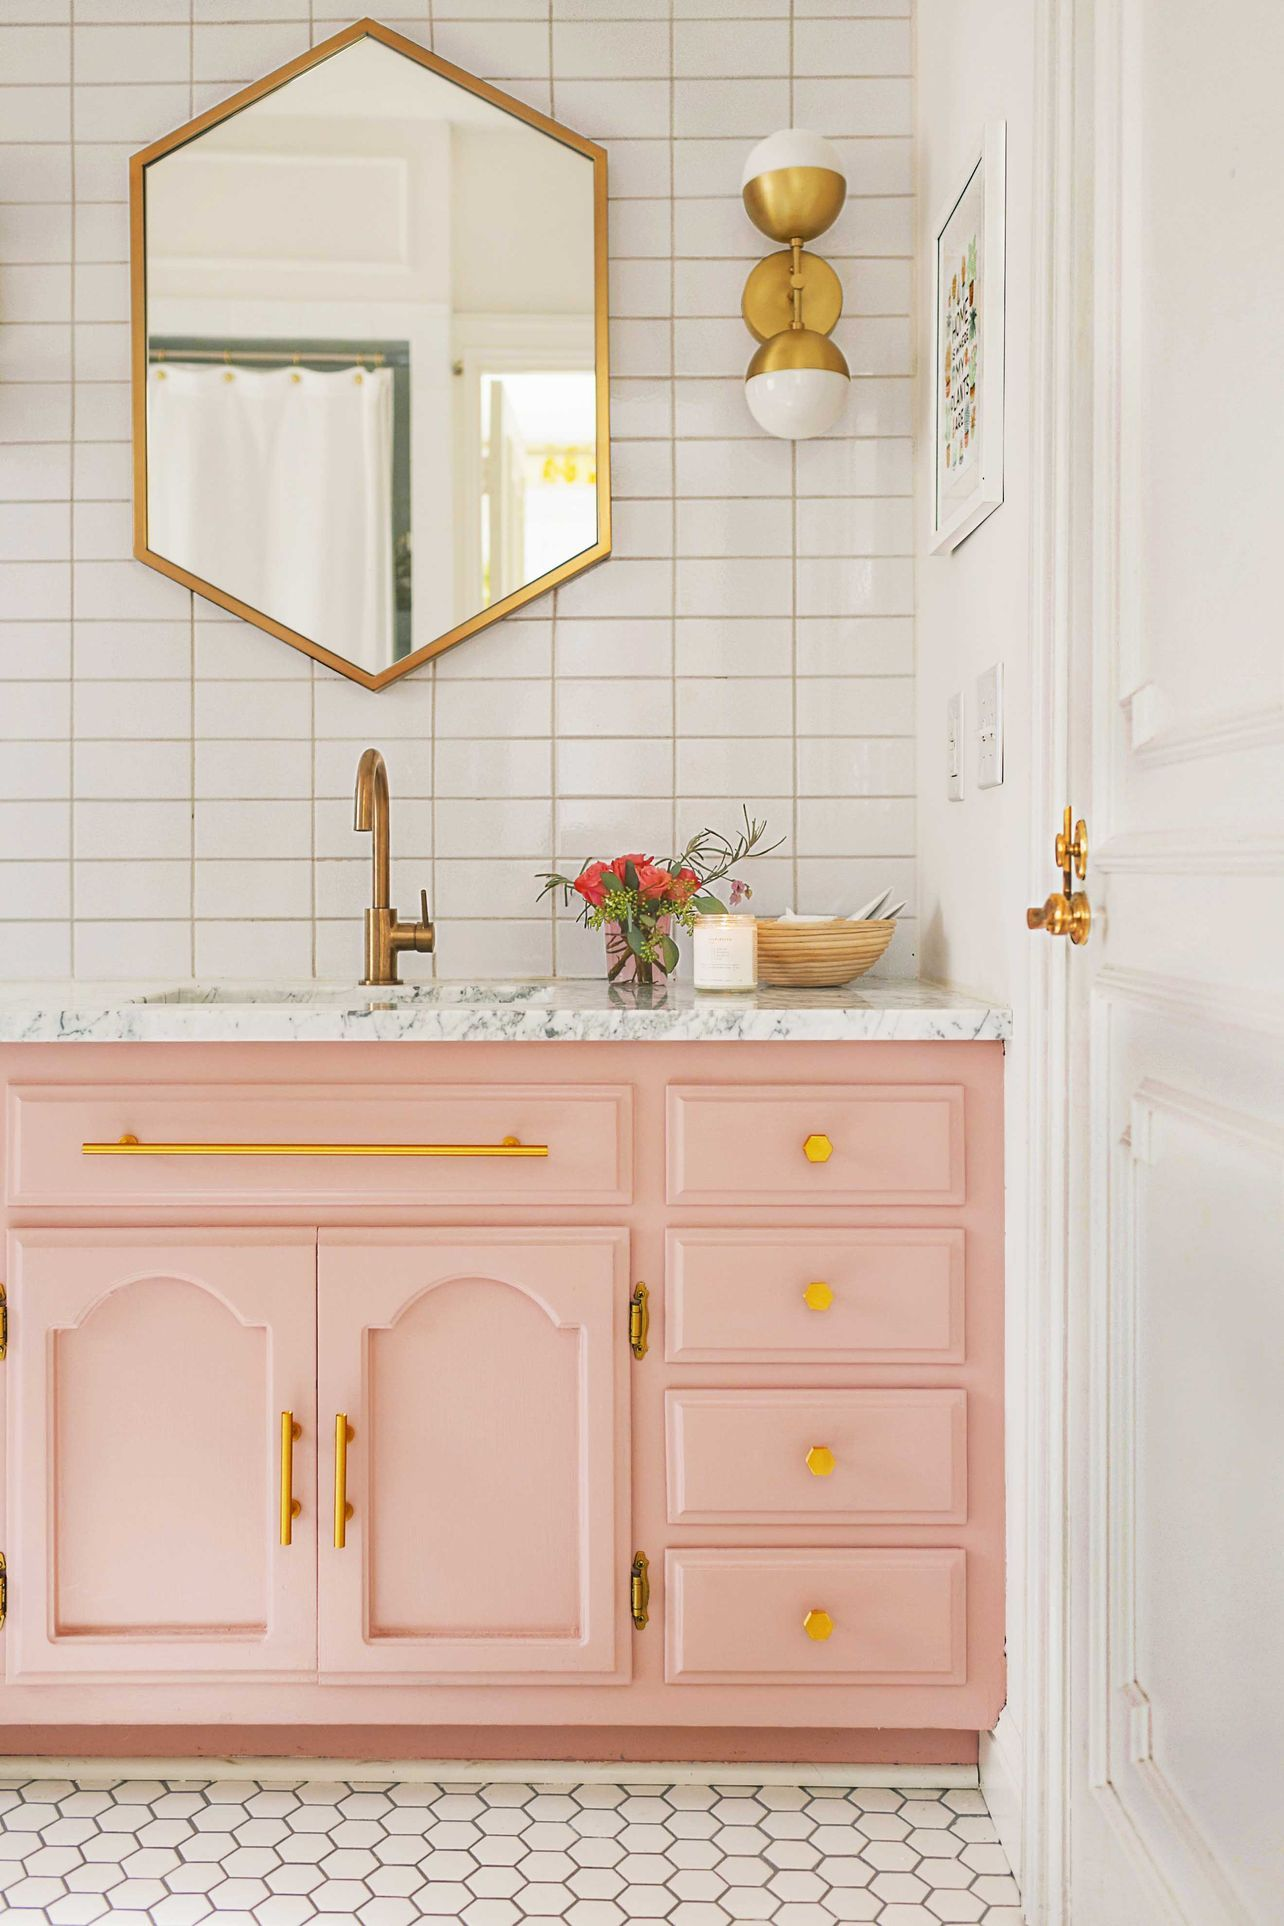 The Best Colors To Give Your Bathroom A New Look Bathroom Wall Colors Painted Vanity Bathroom Best Bathroom Colors Feminine bathroom decorating ideas